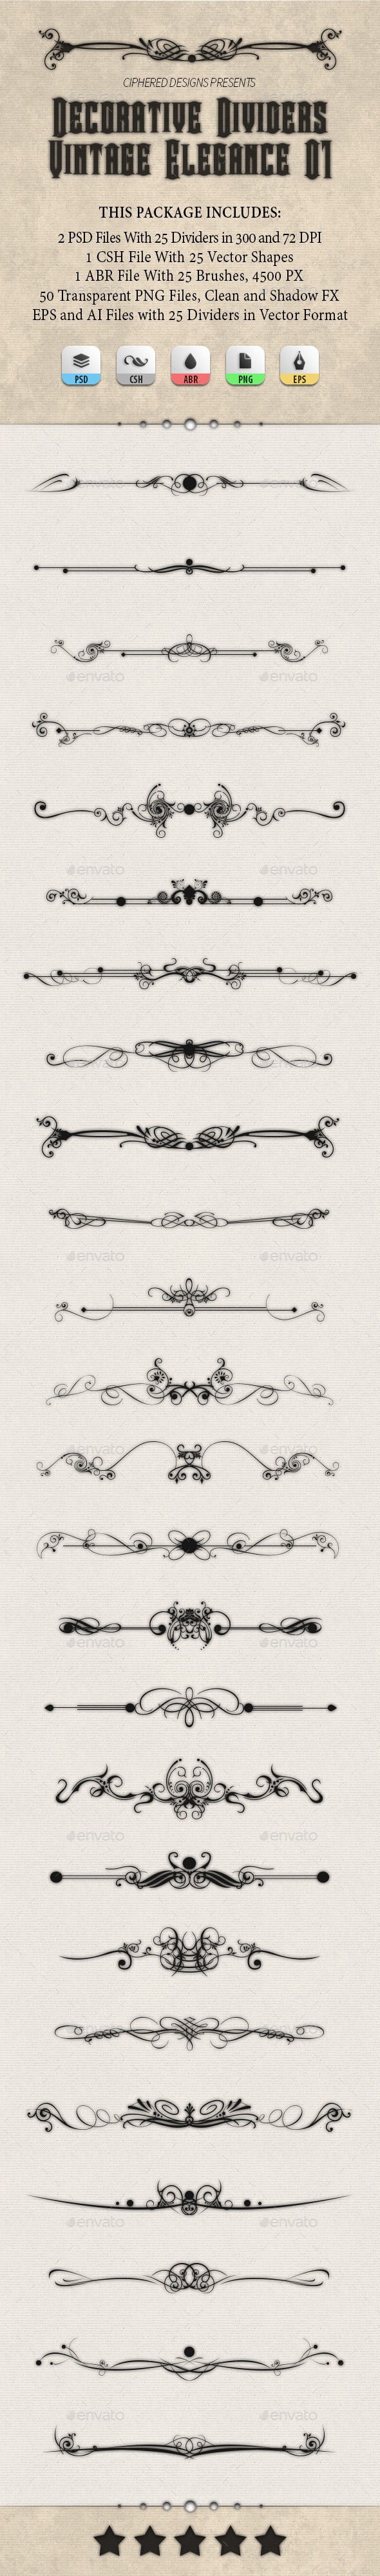 GraphicRiver Decorative Dividers Vintage Elegance 01 8899876